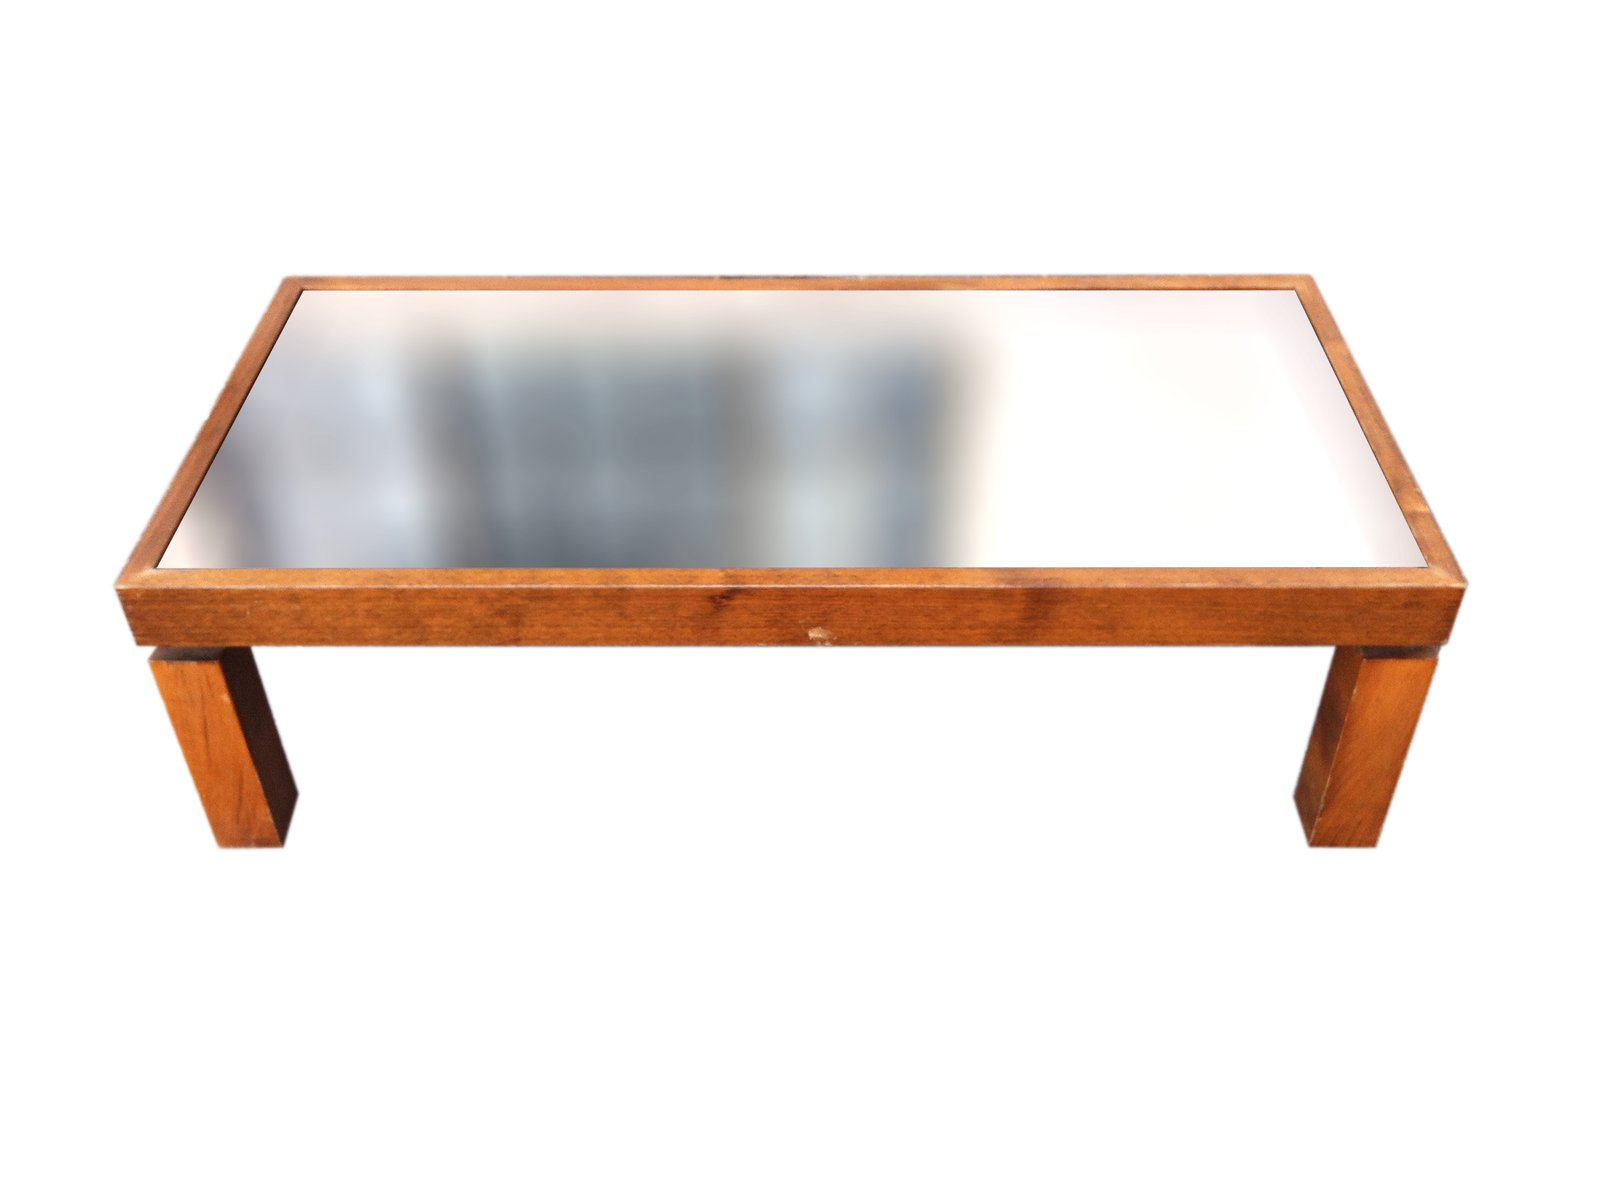 Vintage Coffee Wood Table with Black Mirrored Top for sale at Pamono